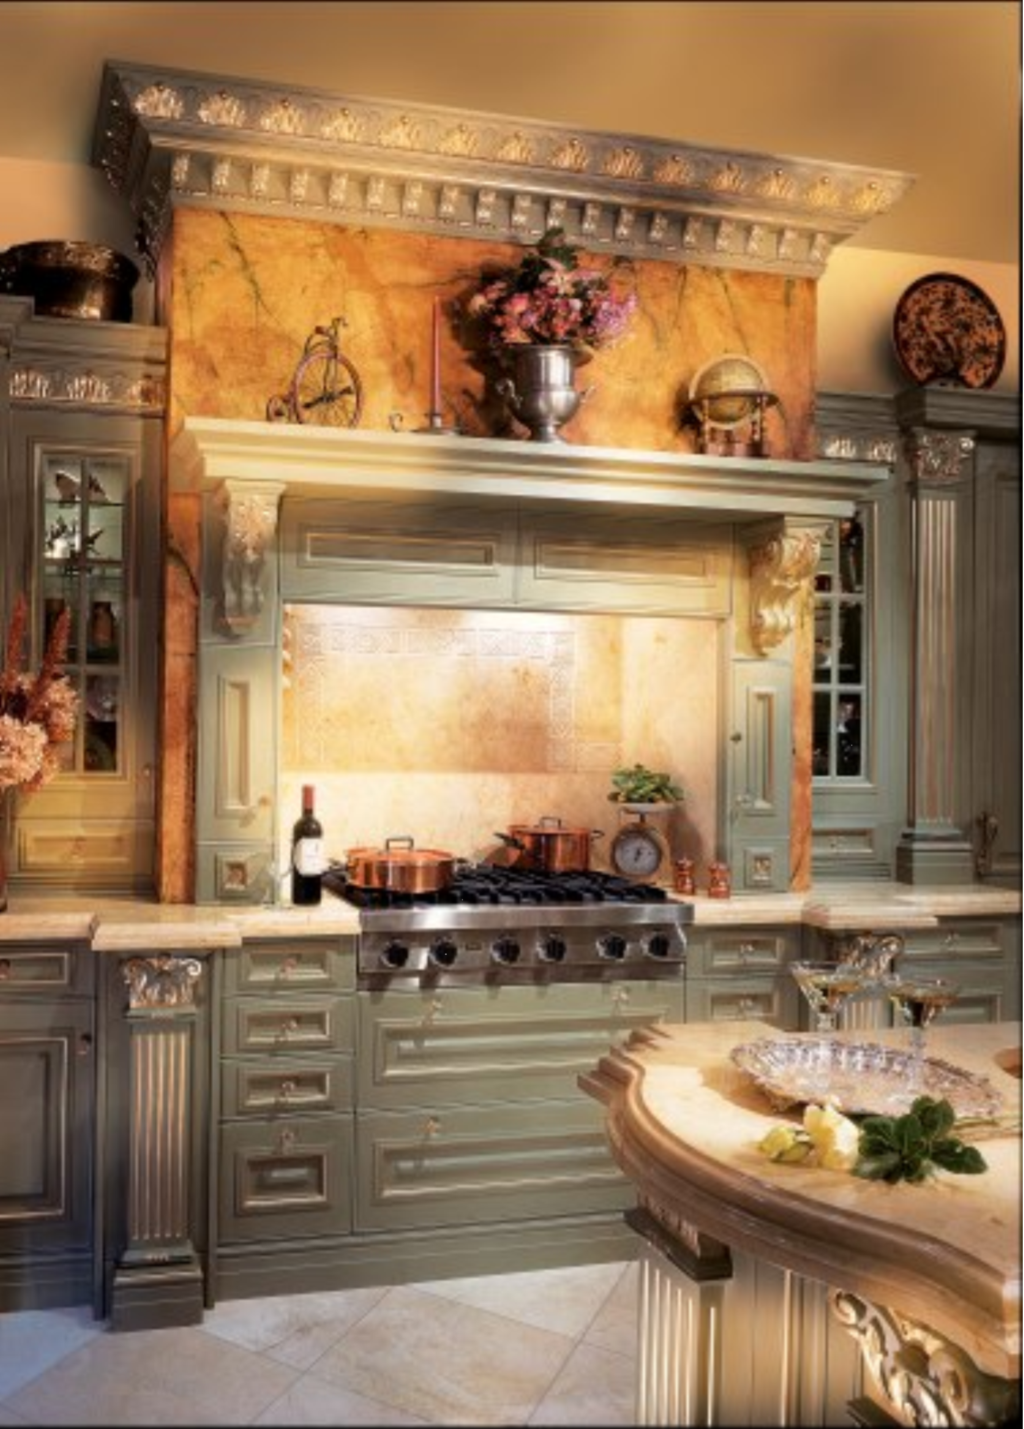 10 Kitchen And Home Decor Items Every 20 Something Needs: Gorgeous Tuscan Kitchen. Love The Marble Header Over The